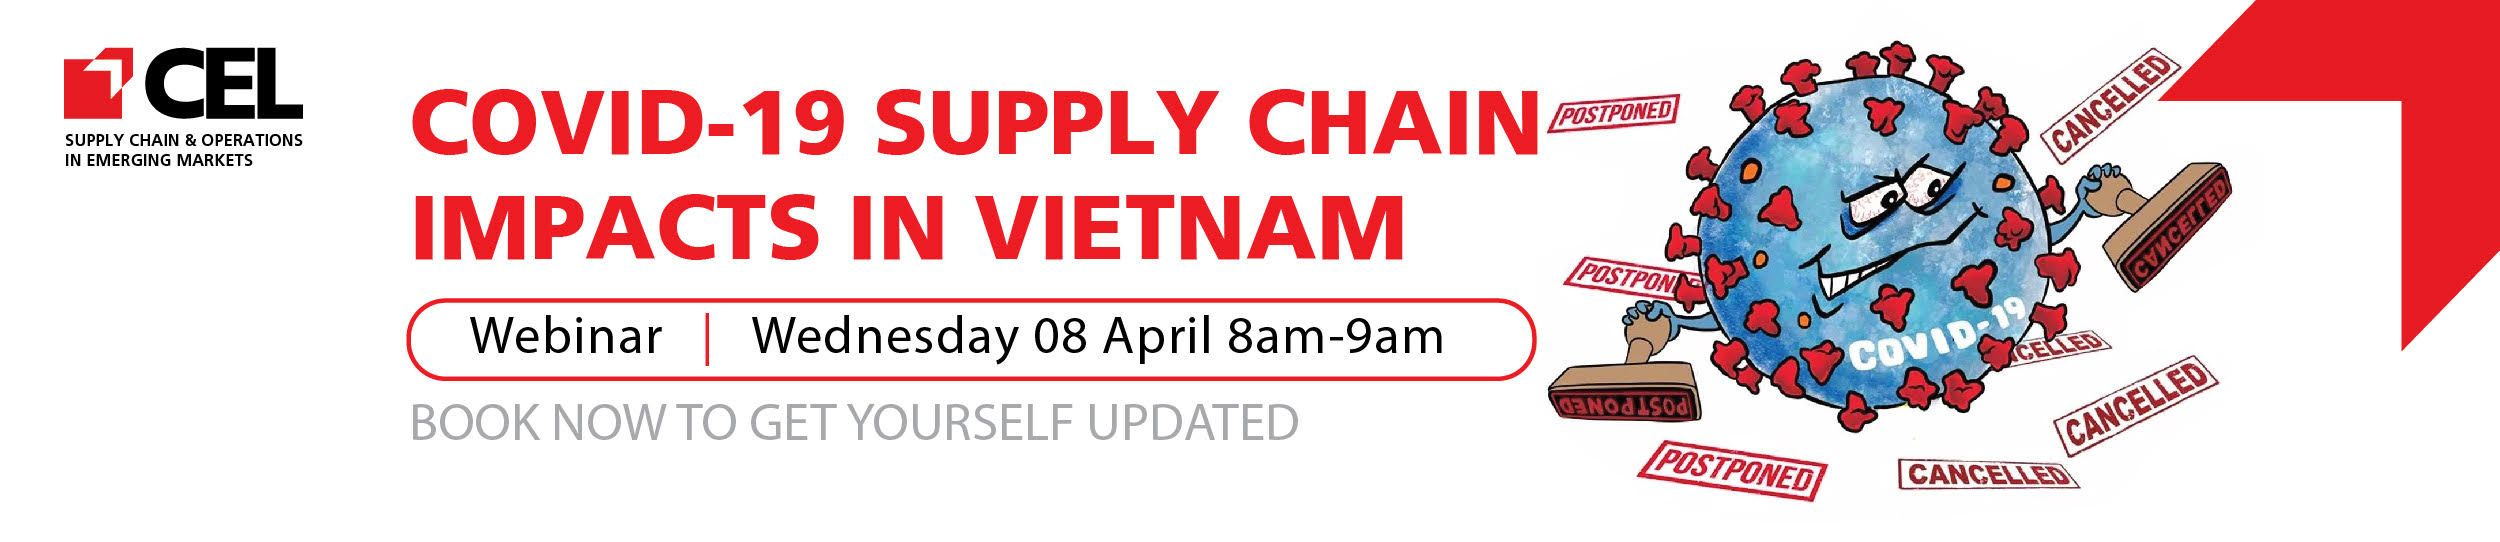 Viet Nam Supply Chain